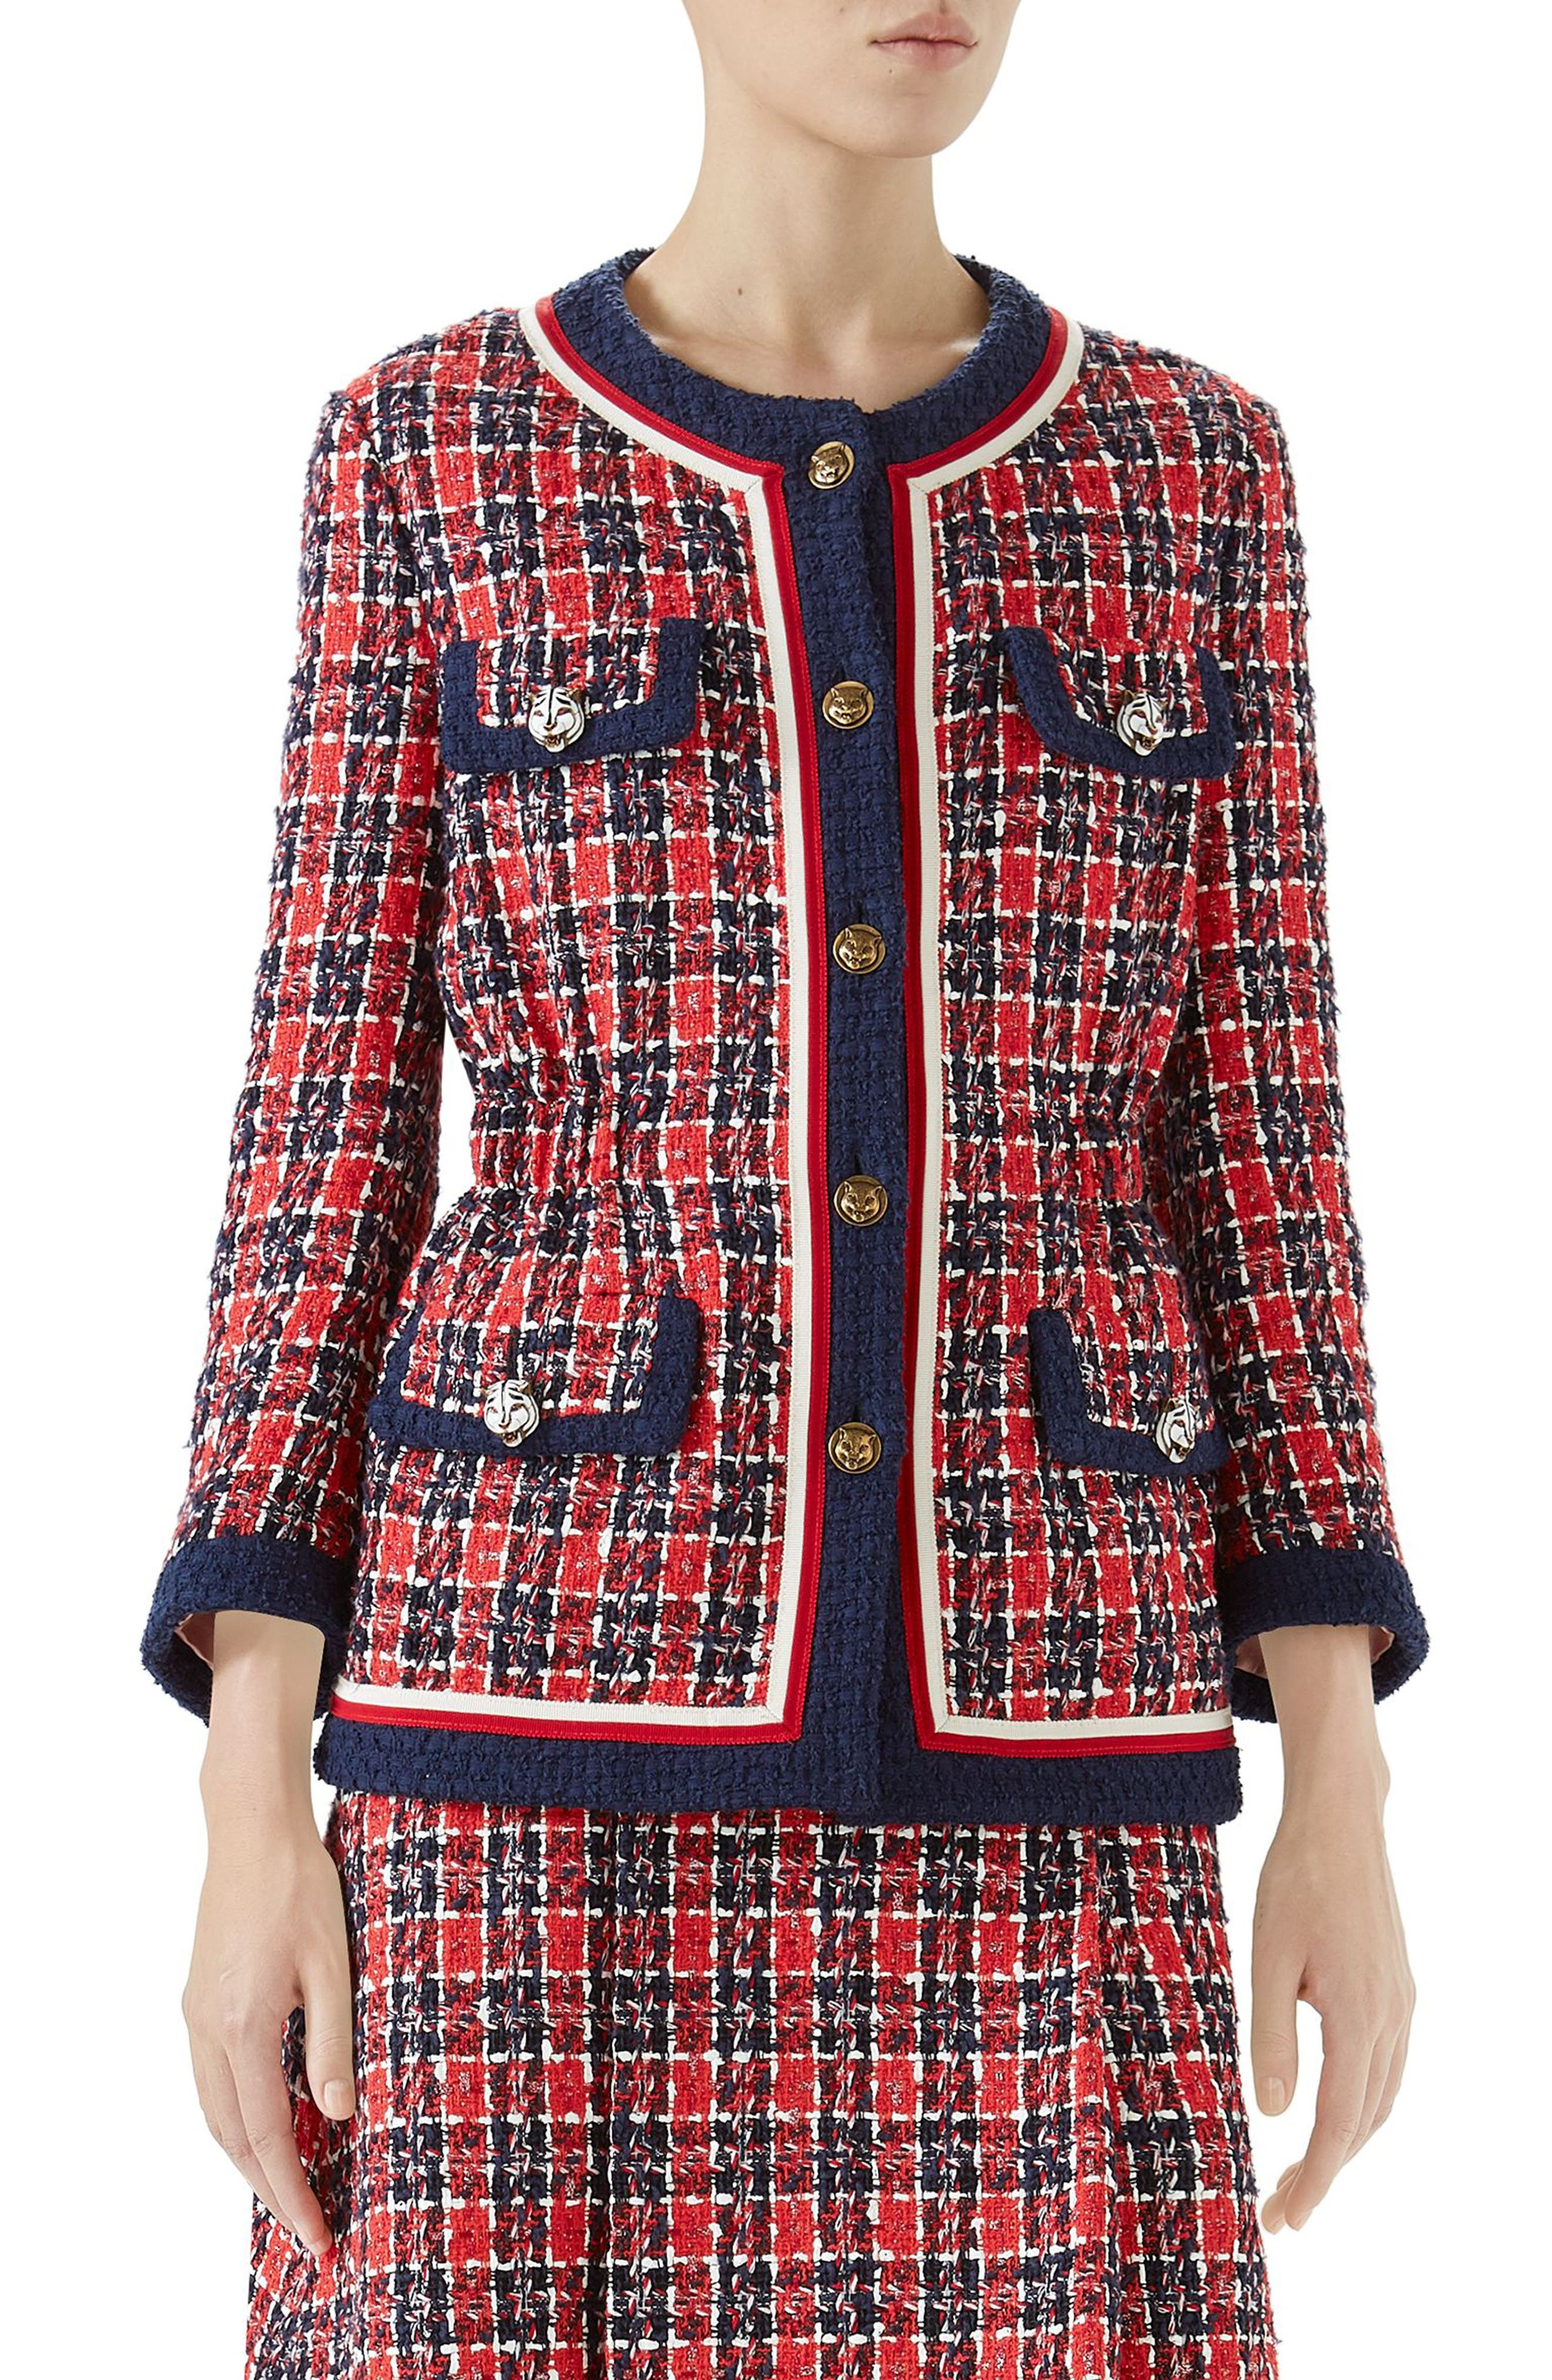 Cinch Waist Tweed Jacket,                         Main,                         color, ROYAL BLUE/ RED